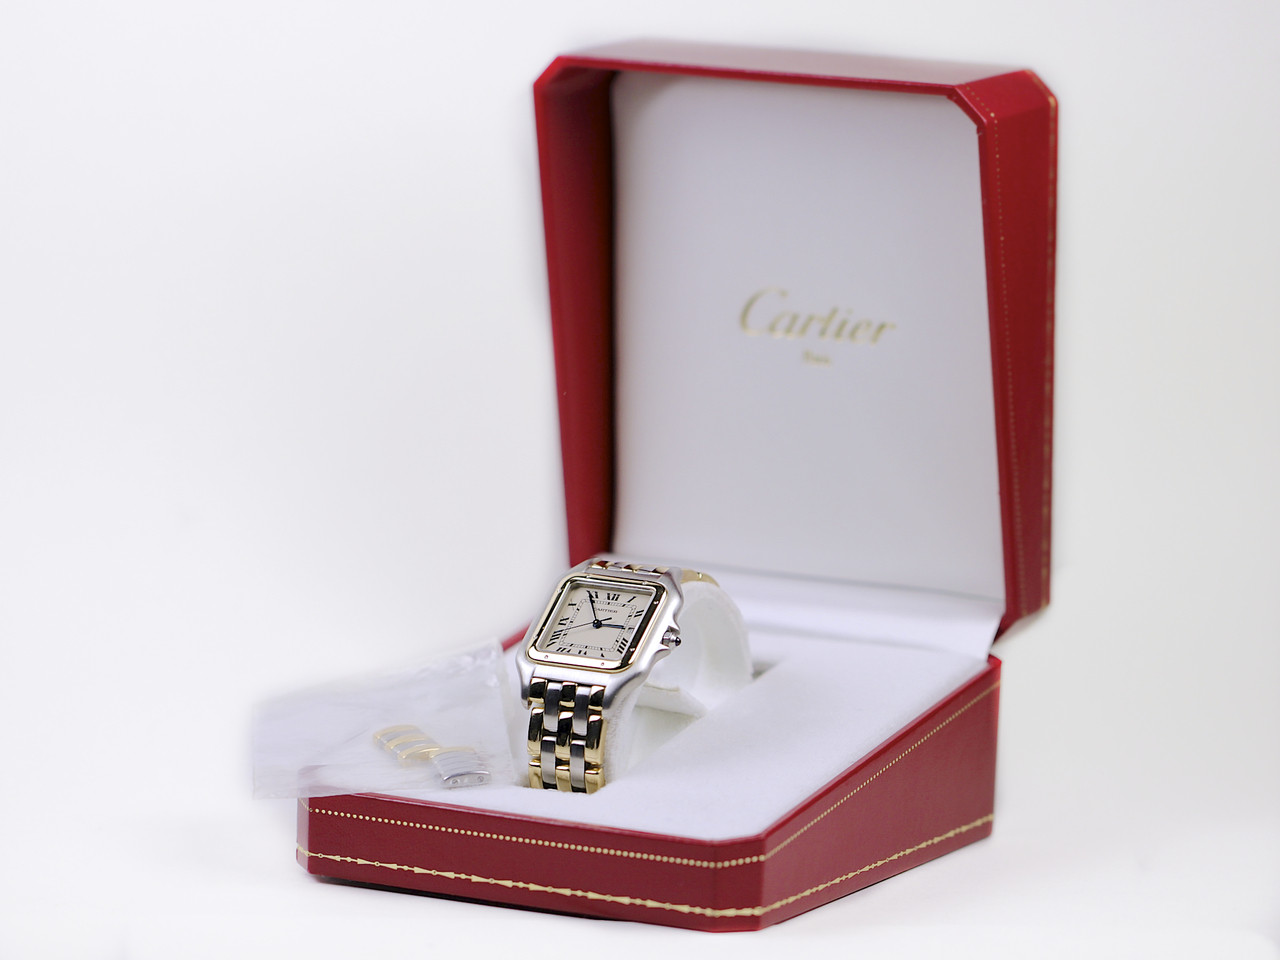 Cartier Watch - Panthere Jumbo Steel 18K Yellow Gold Three Row - for sale online www.Legendoftime.com and in store in Chicago Watch Center